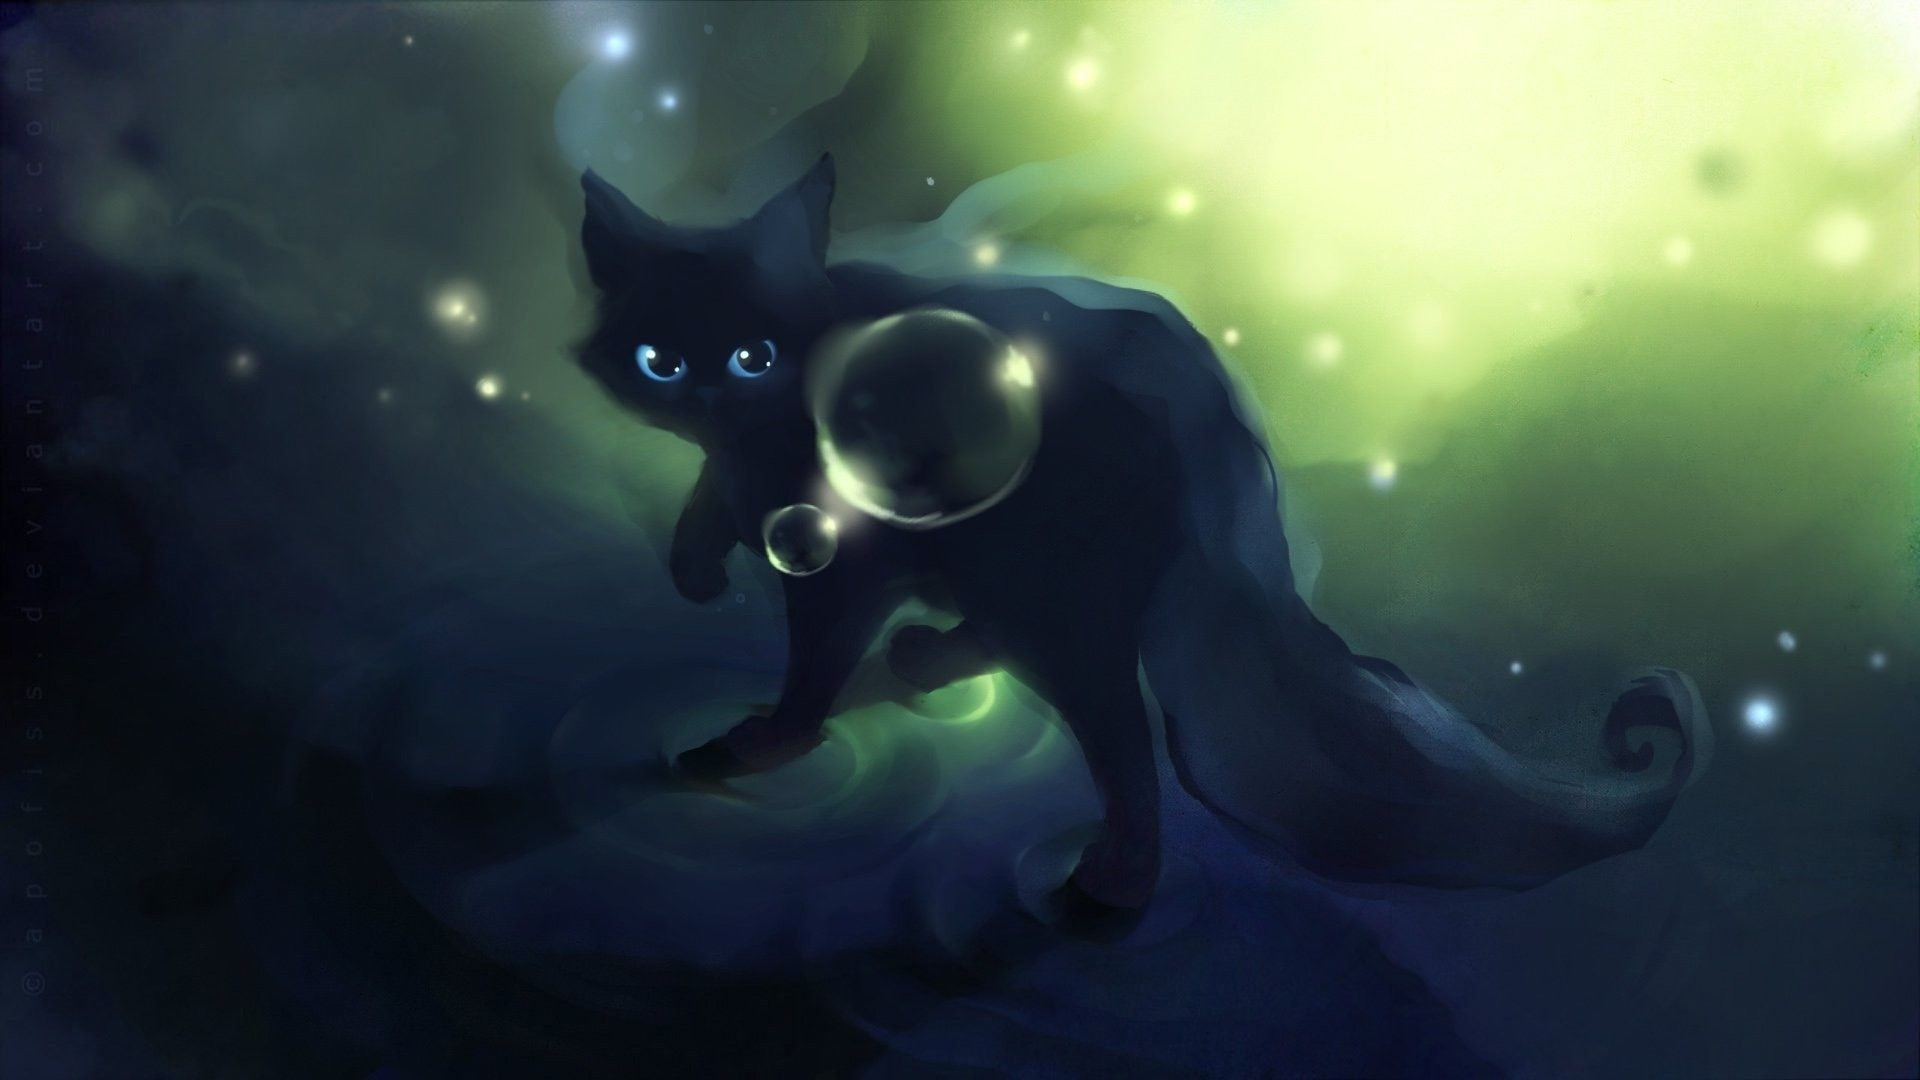 1920x1080 Apofiss Small Black Cat Wallpaper Watercolor